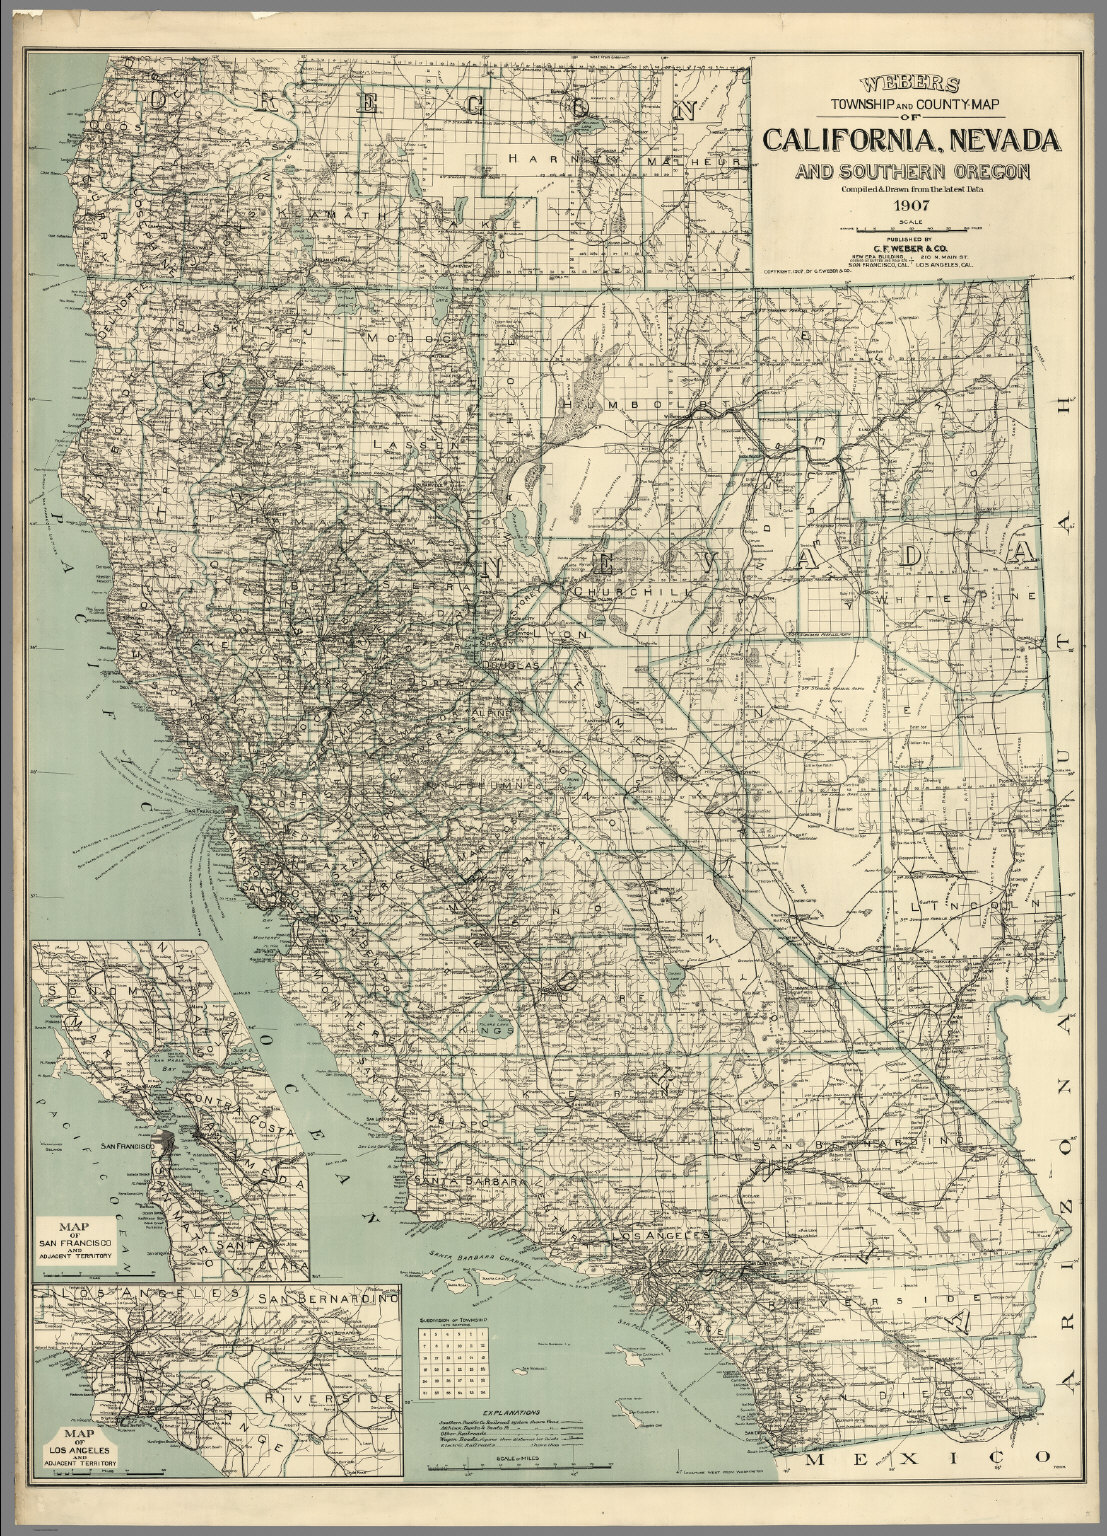 Map Of California, Nevada And Southern Oregon - David Rumsey ...